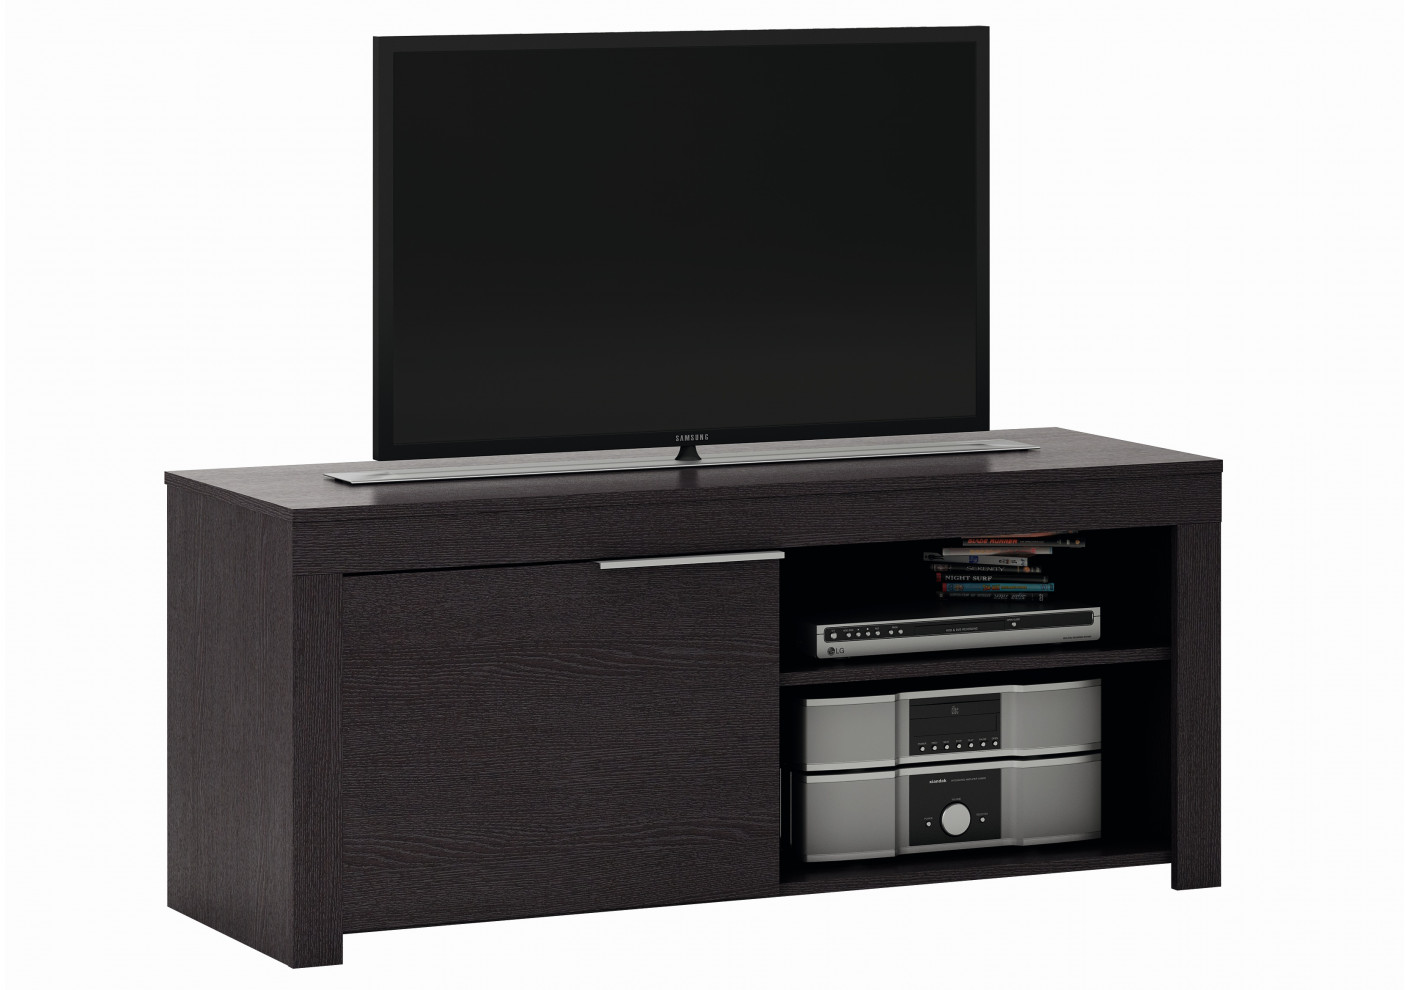 Meuble tv ebene 1 porte 2 niches meubles tv salon for Meuble porte tv